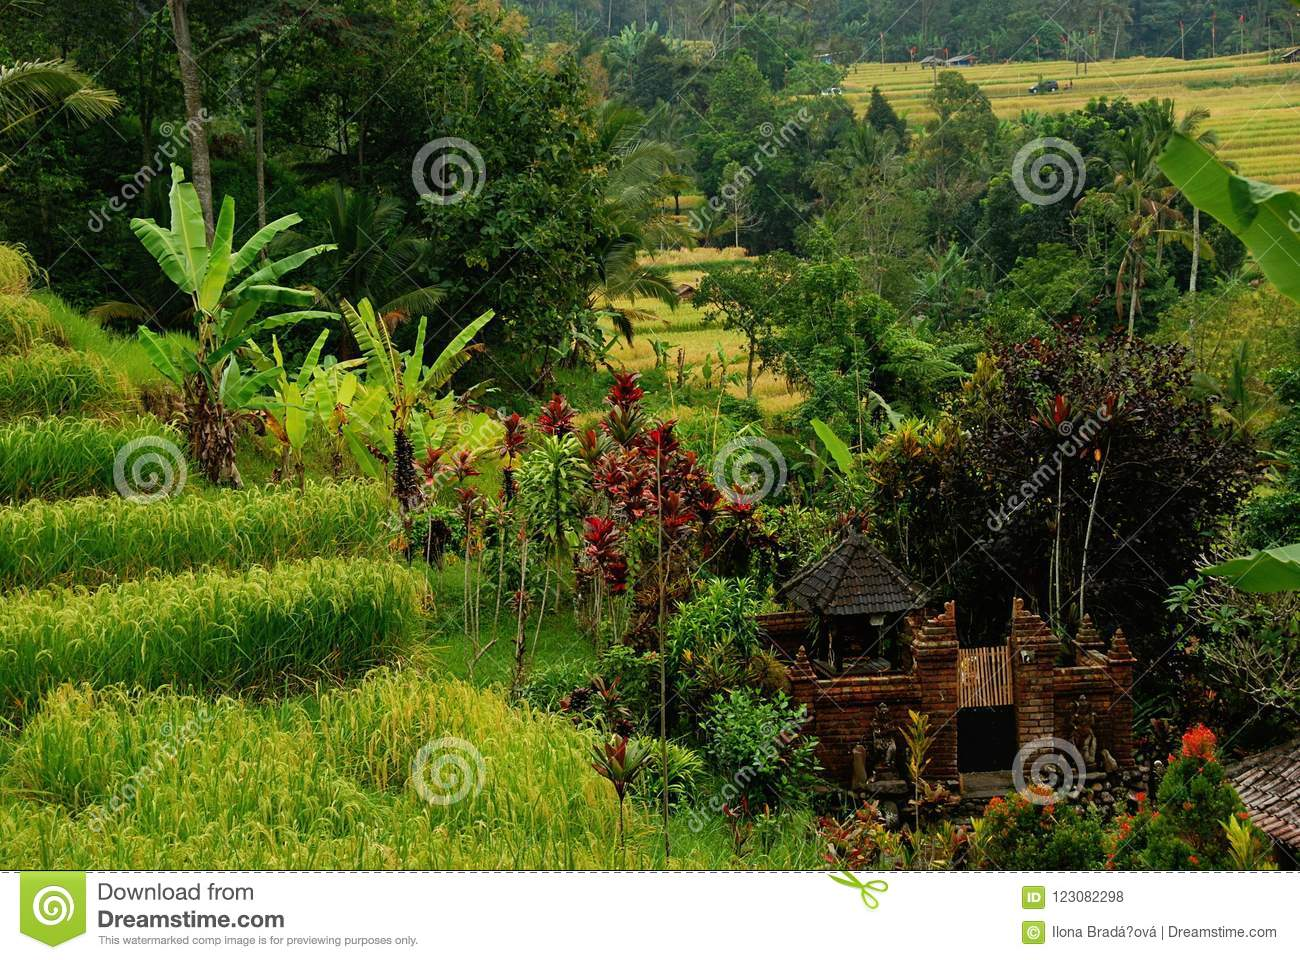 Jatiluwih Rice Terraces Of Bali Stock Photo - Image of palm